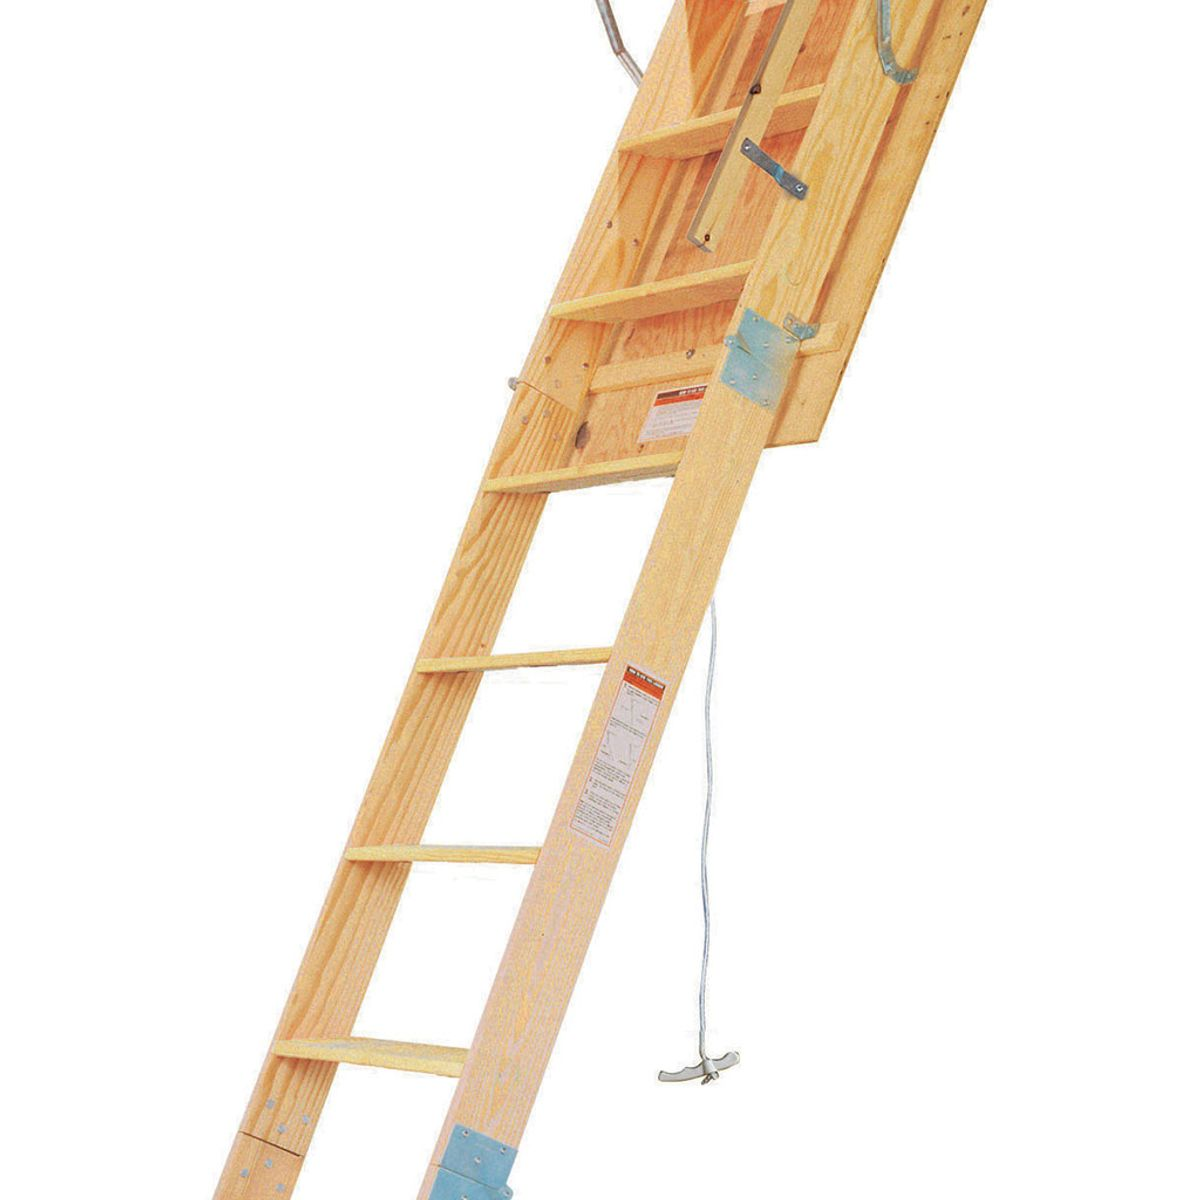 WH3008 30.5in W x 54in L x 8ft H Ceiling Heavy Duty Wood Attic Ladder  sc 1 st  Werner Ladder & Attic Ladders - Werner